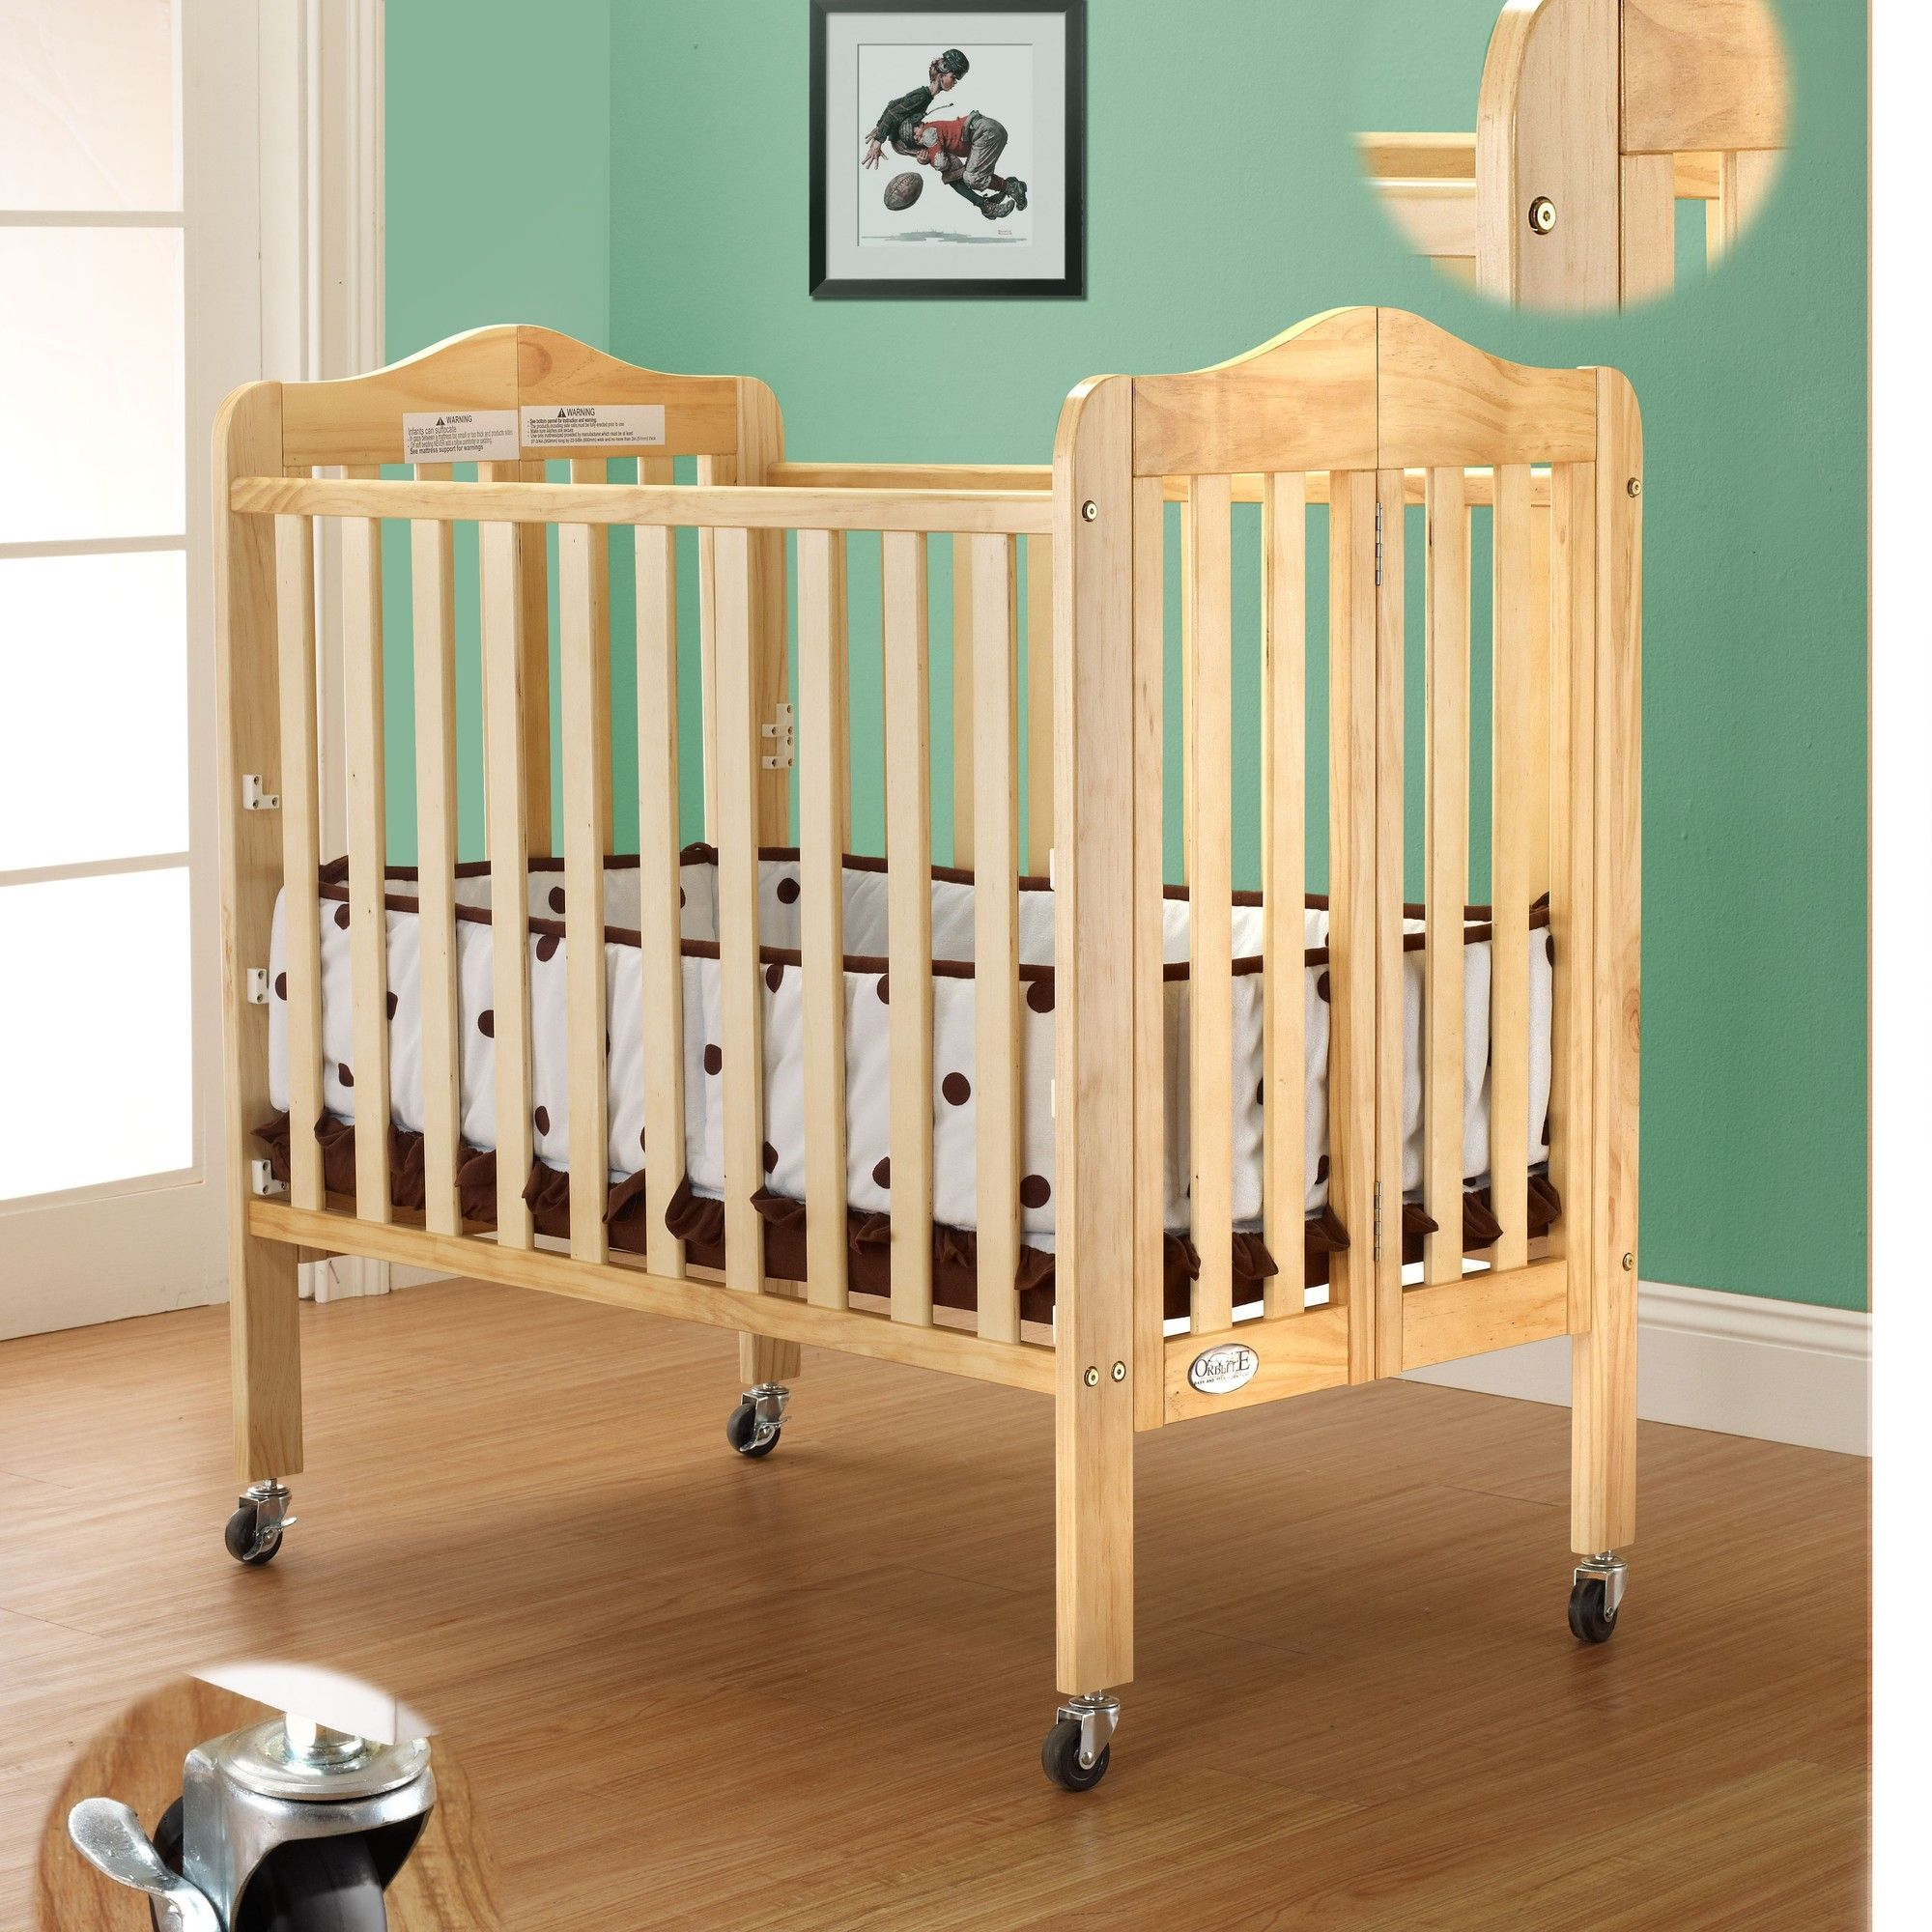 Gocrib adventure crib for sale - Aden 4 In 1 Mini Convertible Crib